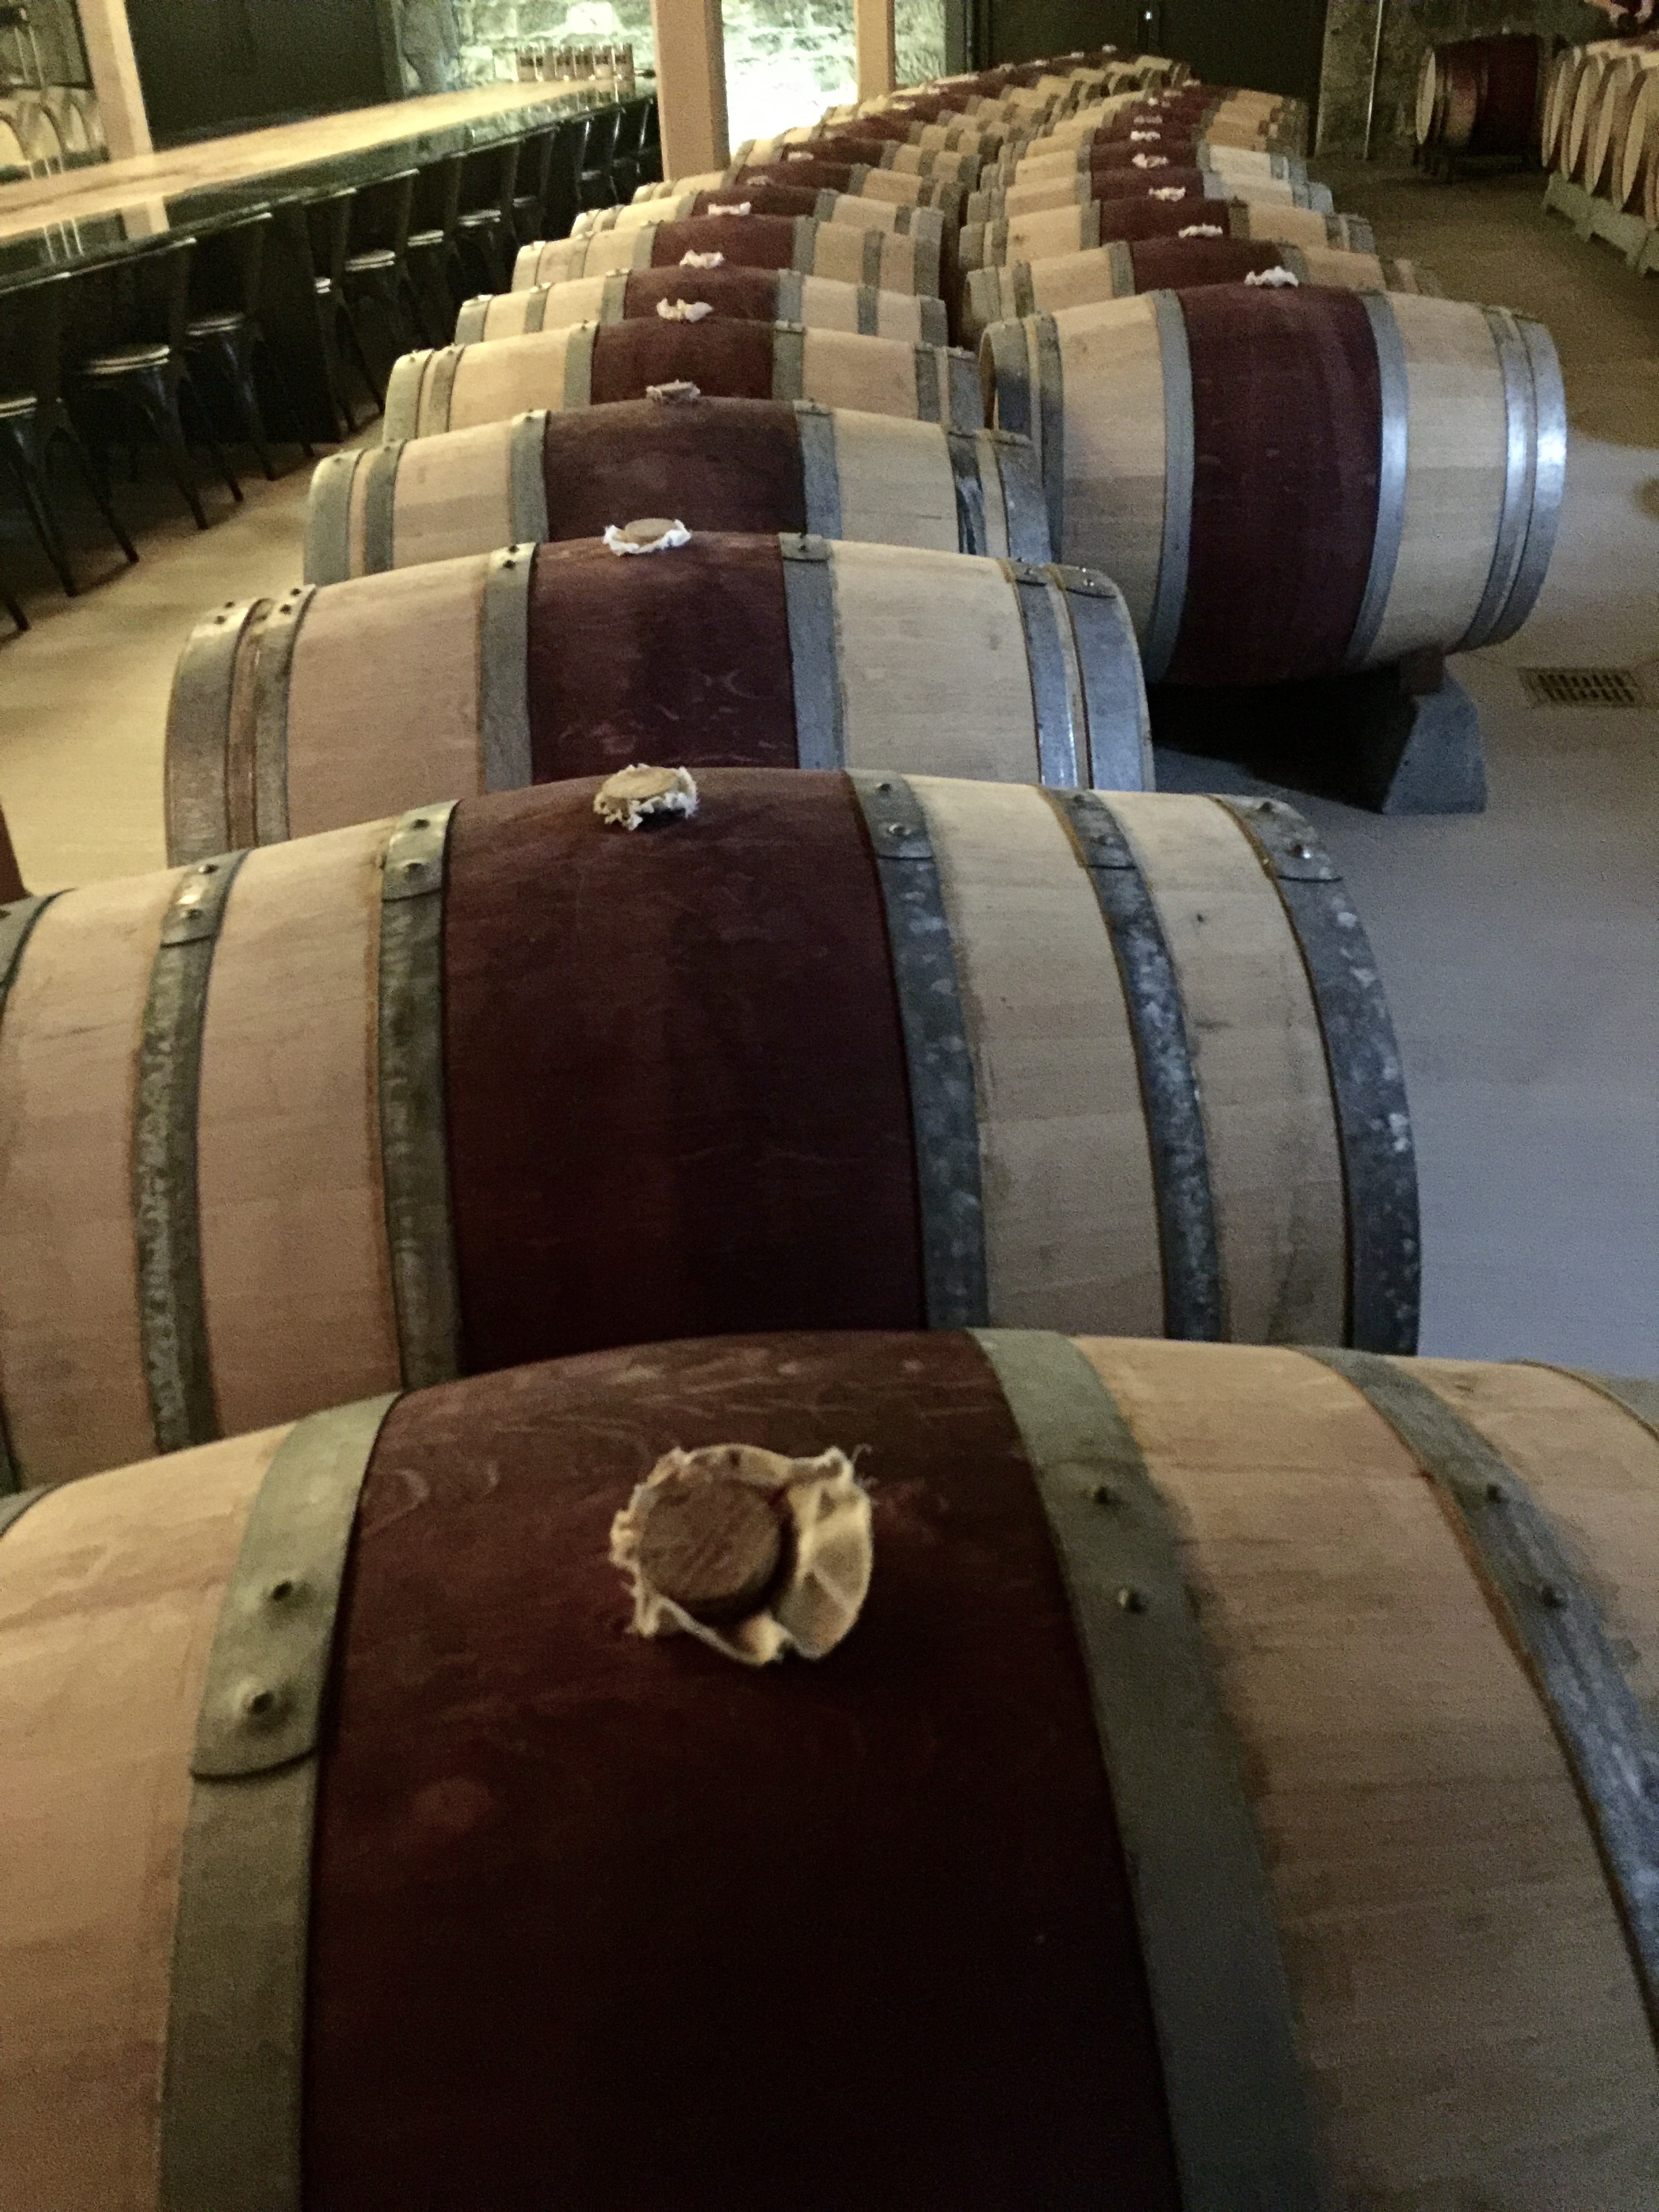 Wine barrels in the old stone building. We tasted directly from the barrel here.